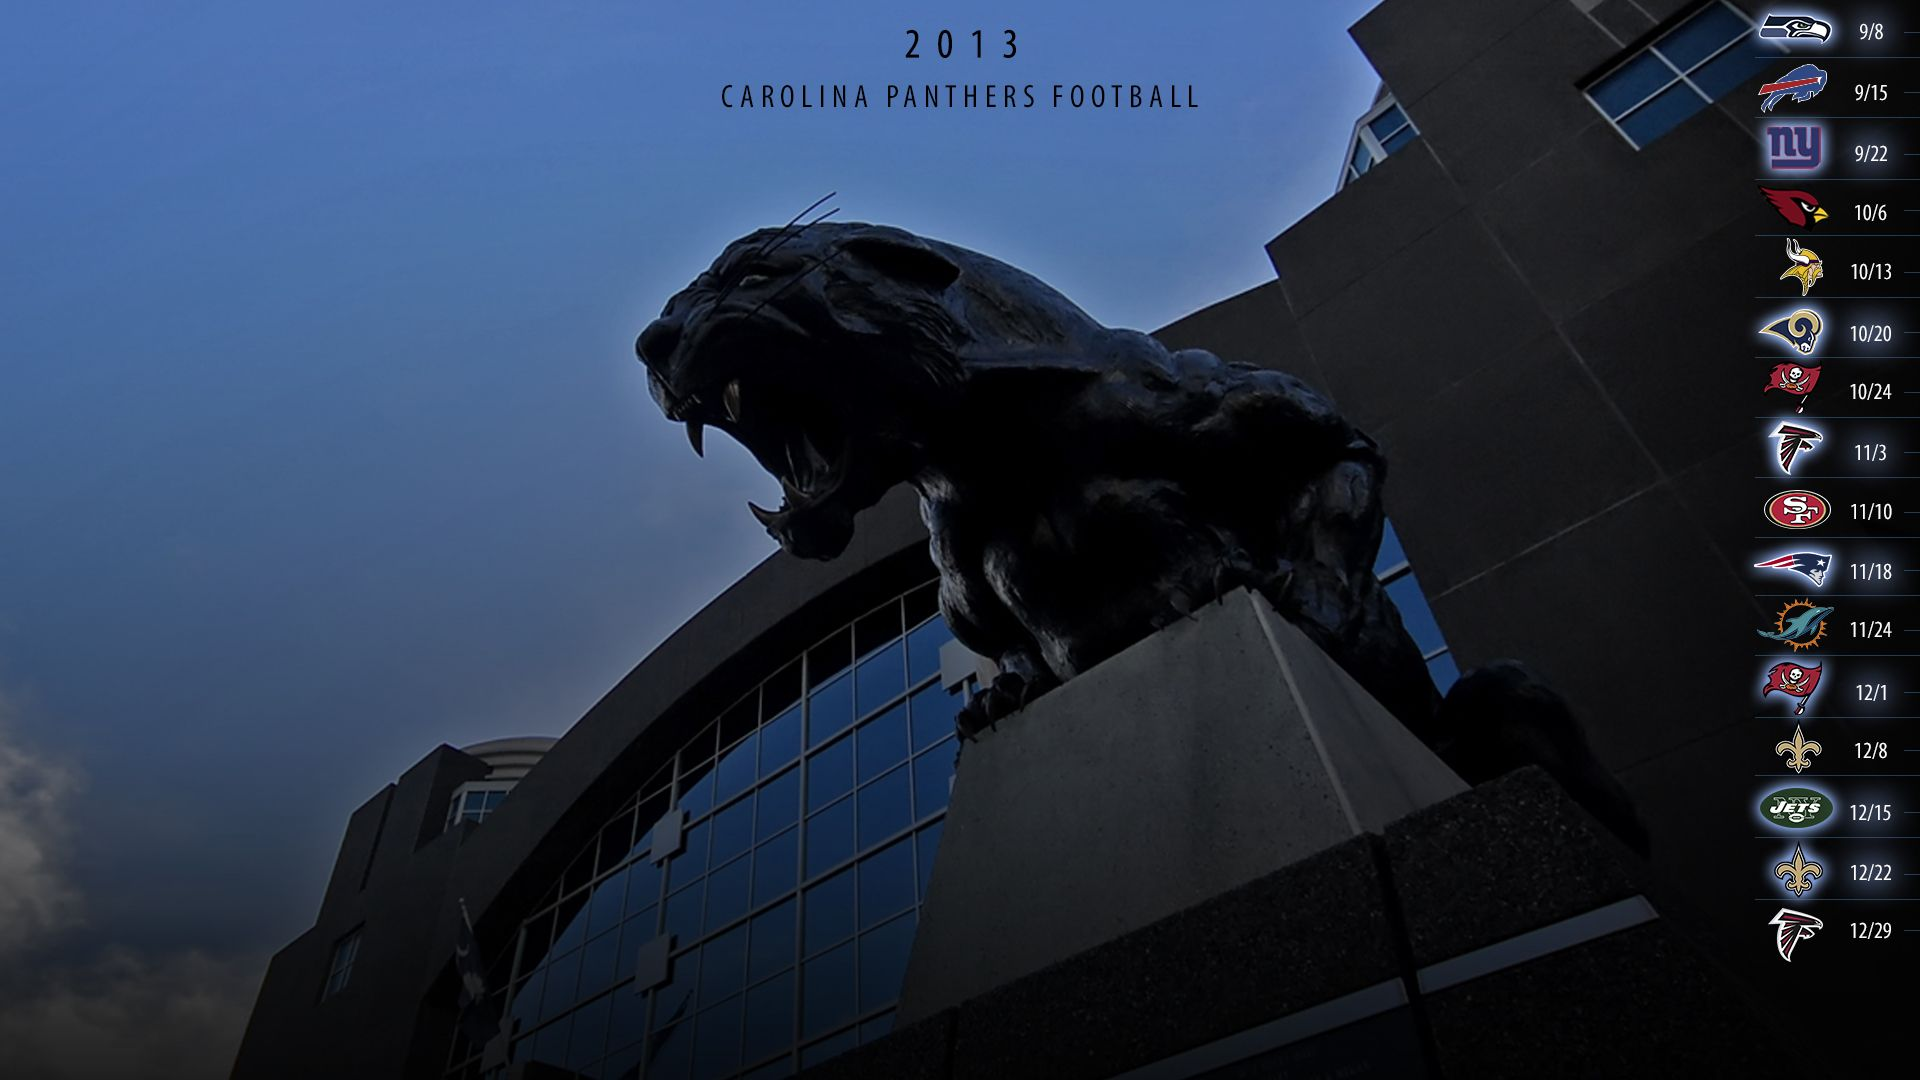 Meows 2013 schedule wallpaper page 3 carolina panthers news and 2fo3g voltagebd Image collections